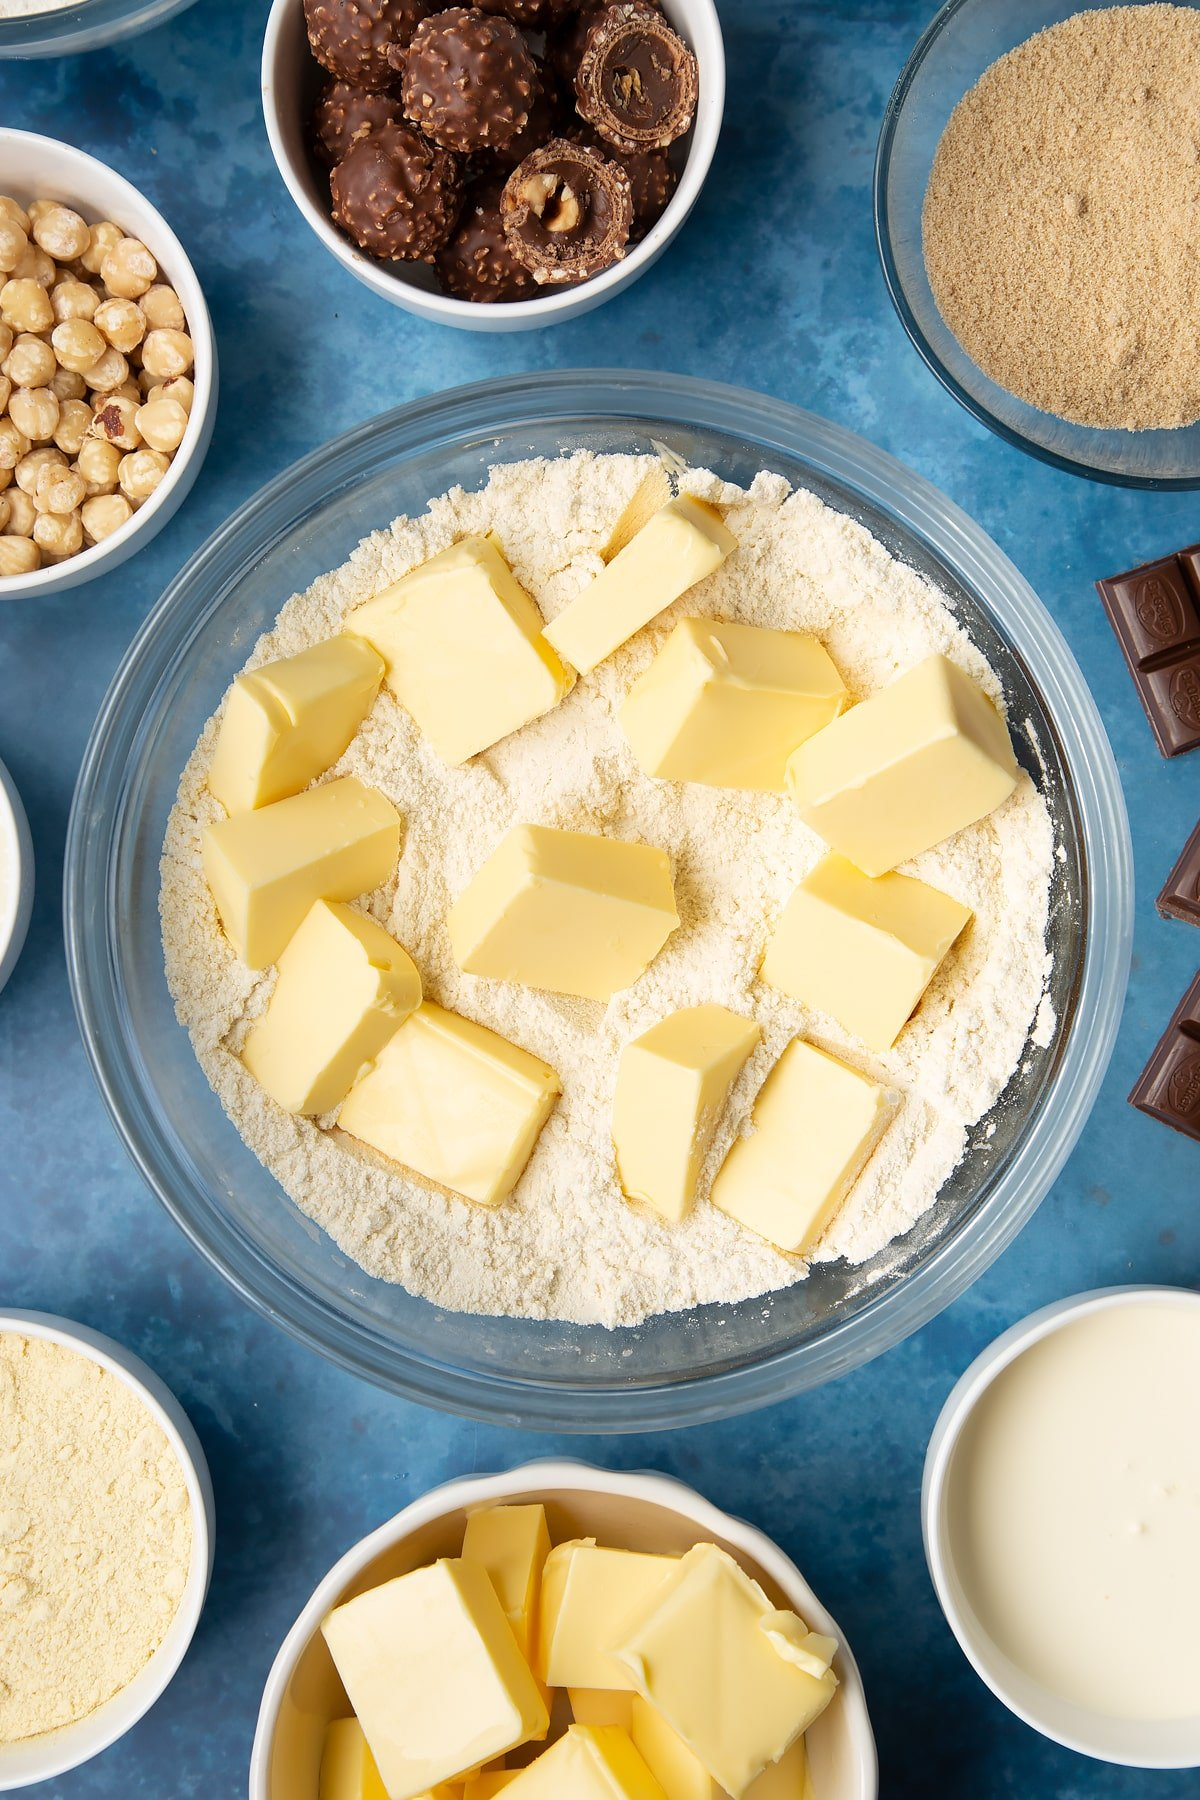 Flour, sugar, semolina and butter in a glass mixing bowl. Ingredients to make a Ferrero Rocher slice surround the bowl.